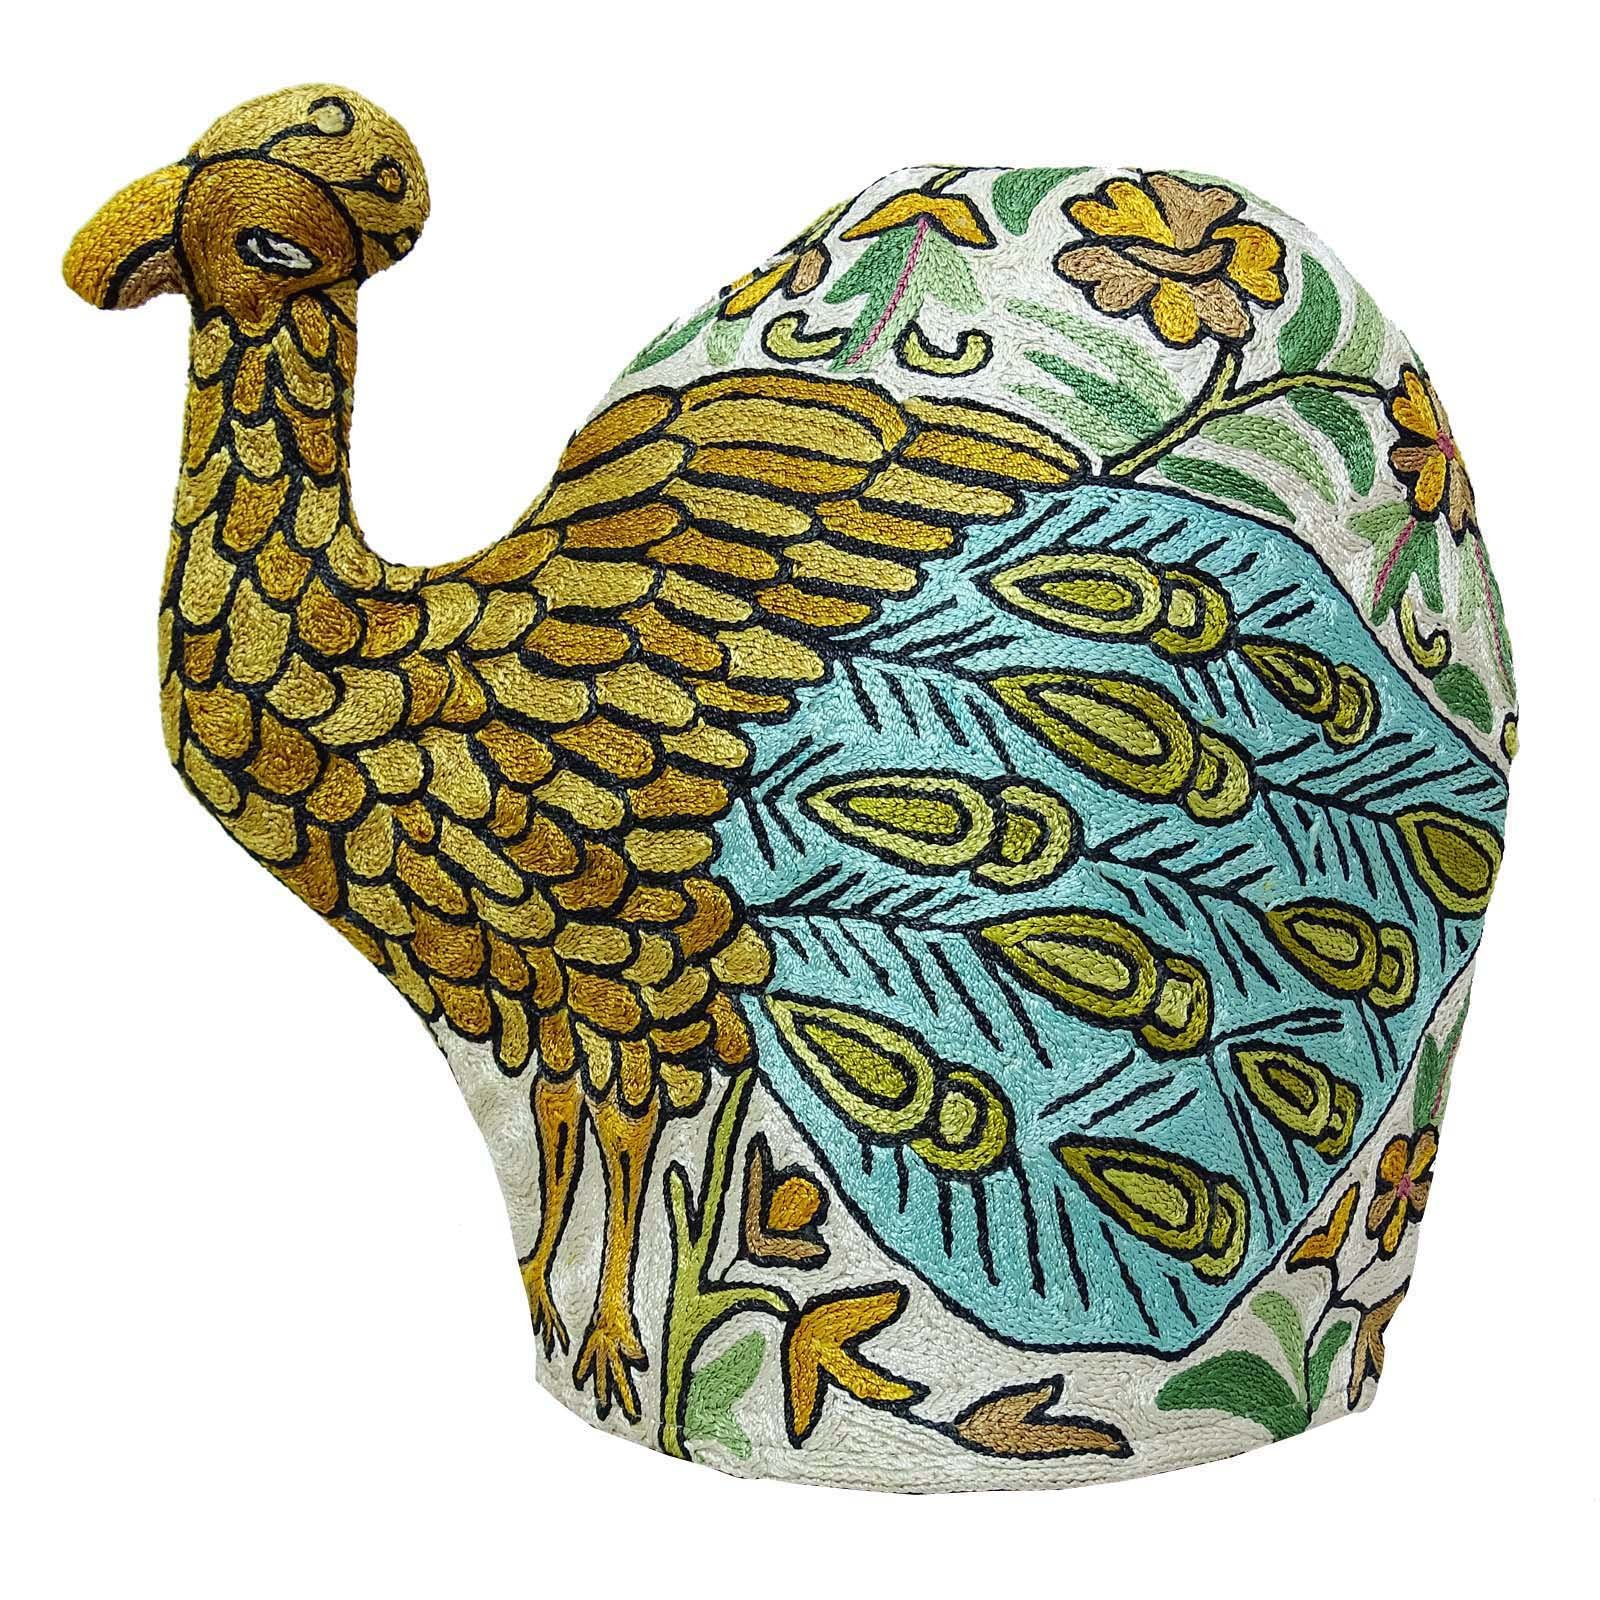 Peacock Design Kettle Cover Indian Kashmiri Embroidery Quilted Tea Cover Gift by ibaexports